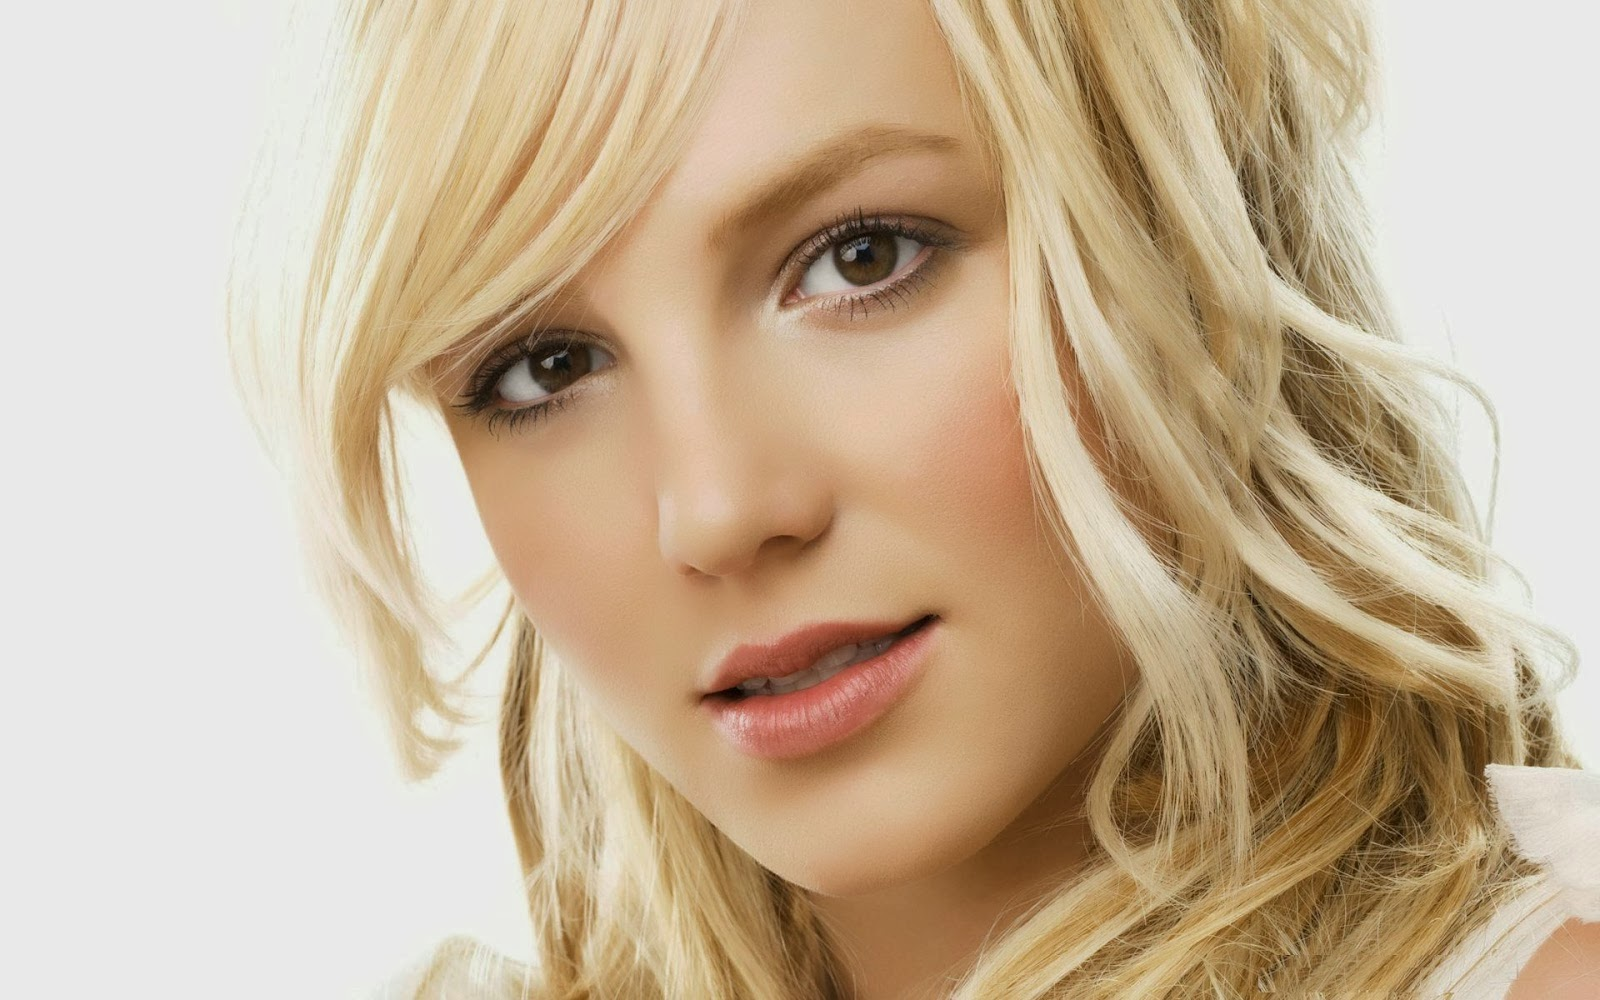 Britney+Spears+Hd+Wallpapers+Free+Download026